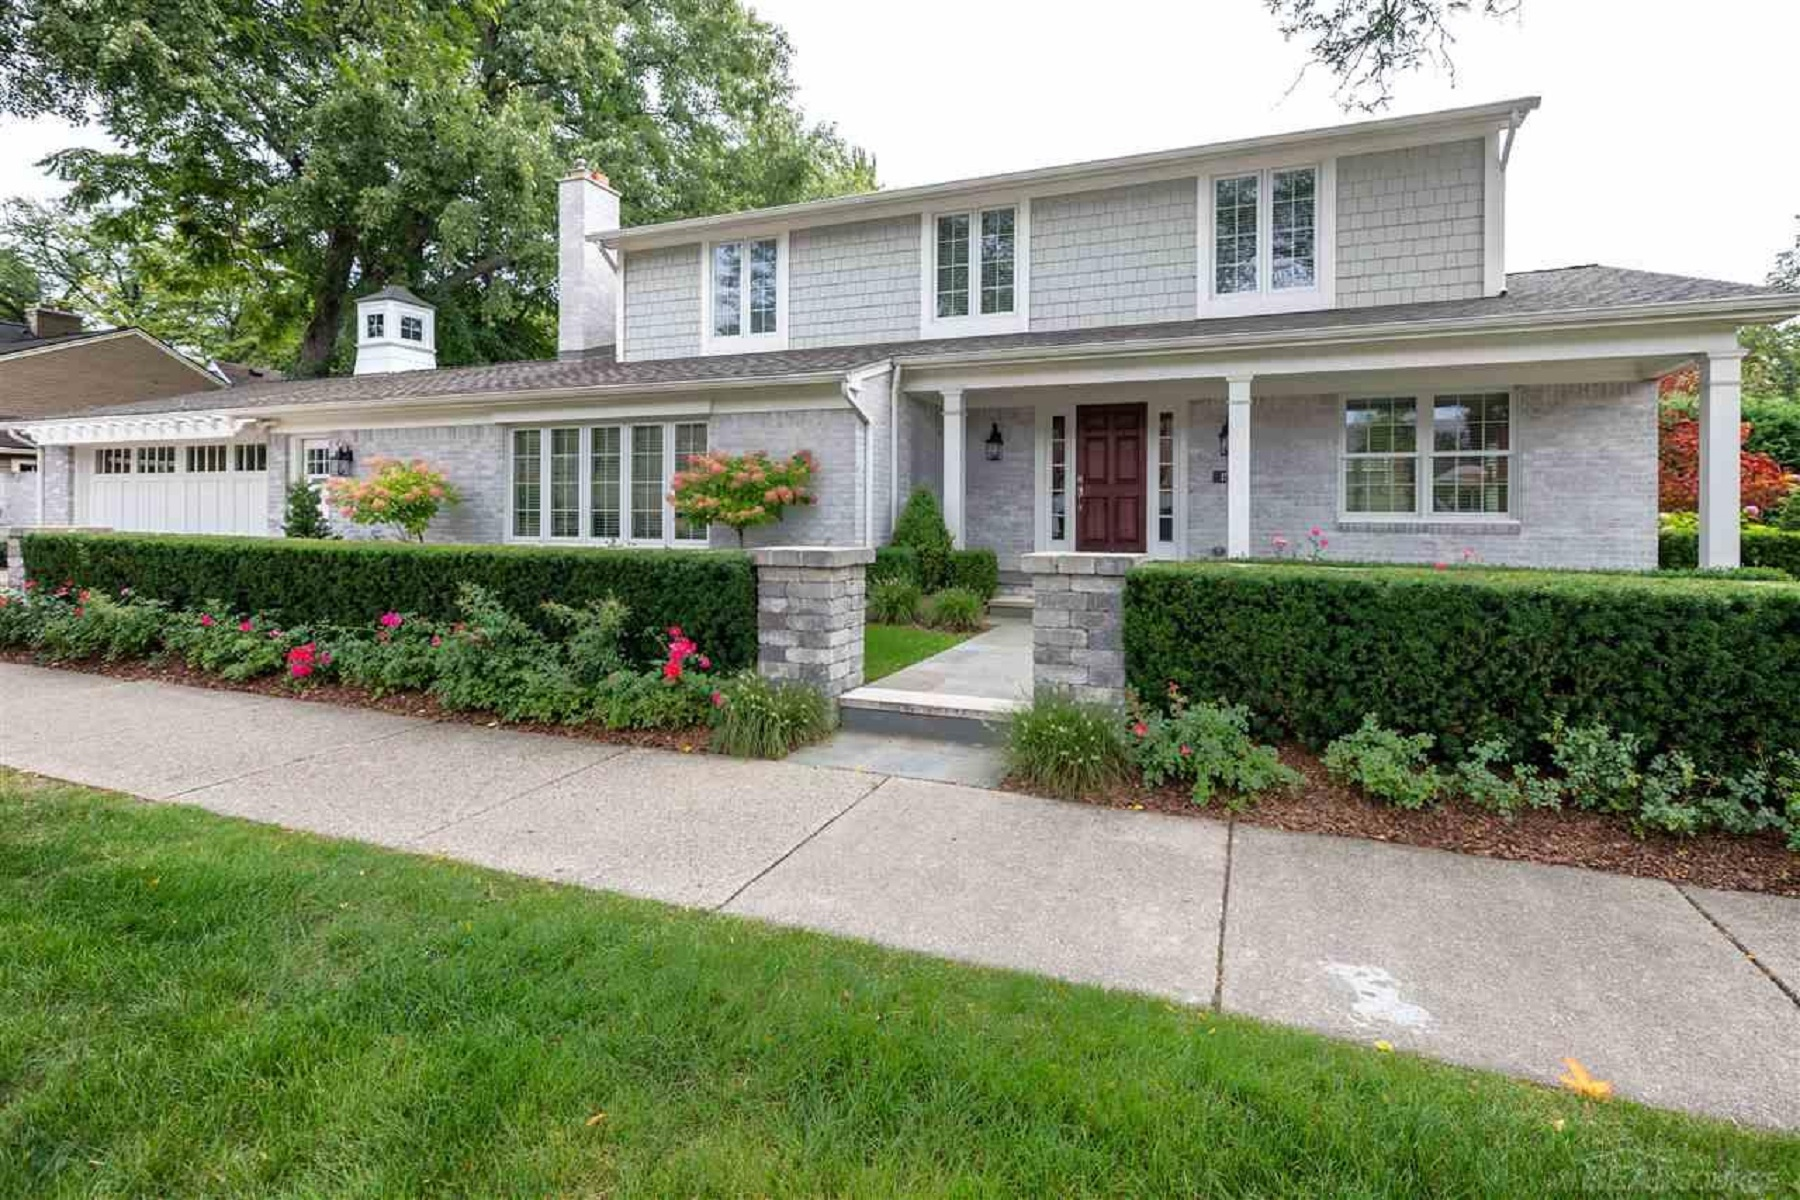 Single Family Homes for Sale at Grosse Pointe Farms 150 Kercheval, Grosse Pointe Farms, Michigan 48236 United States